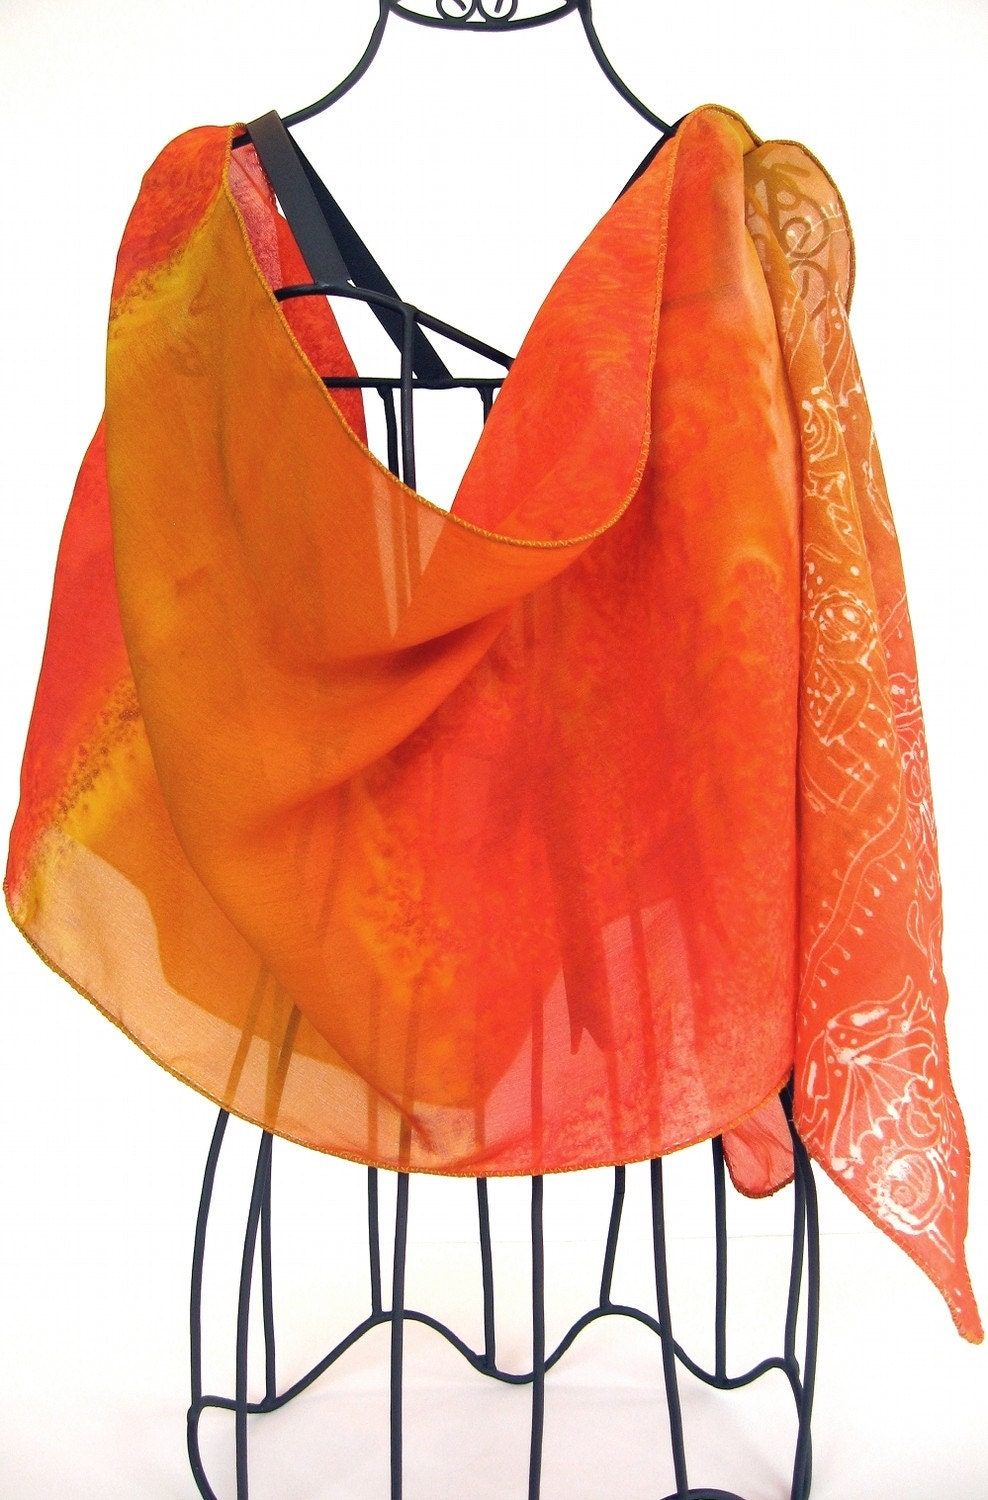 KavitaKriti - Indian luxury silk scarves. Hand painted. Hand Dyed. Handmade.